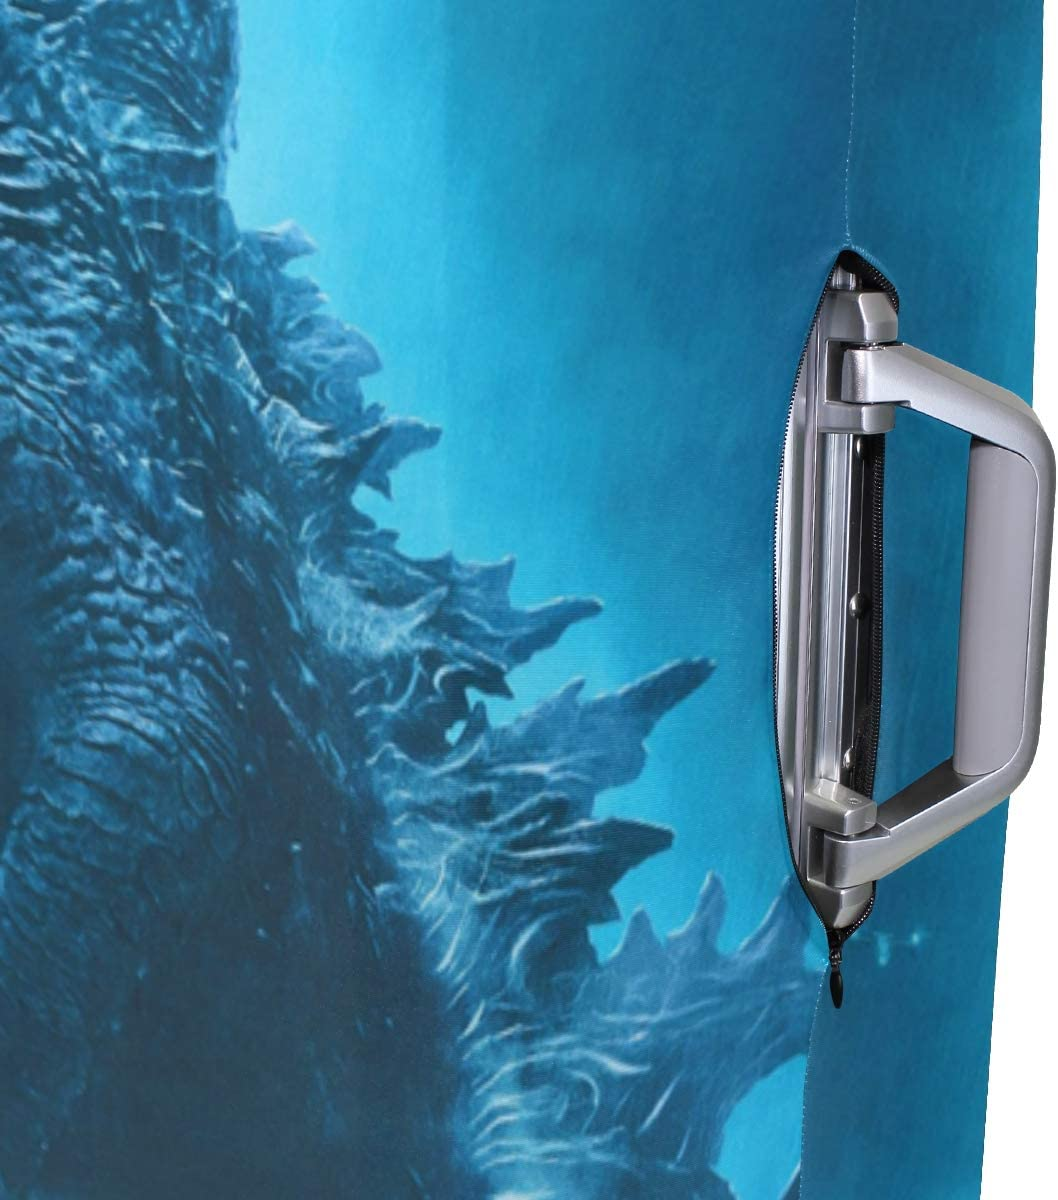 Godzilla suitcase cover elastic suitcase cover zipper luggage case removable cleaning suitable for 29-32 trunk cover